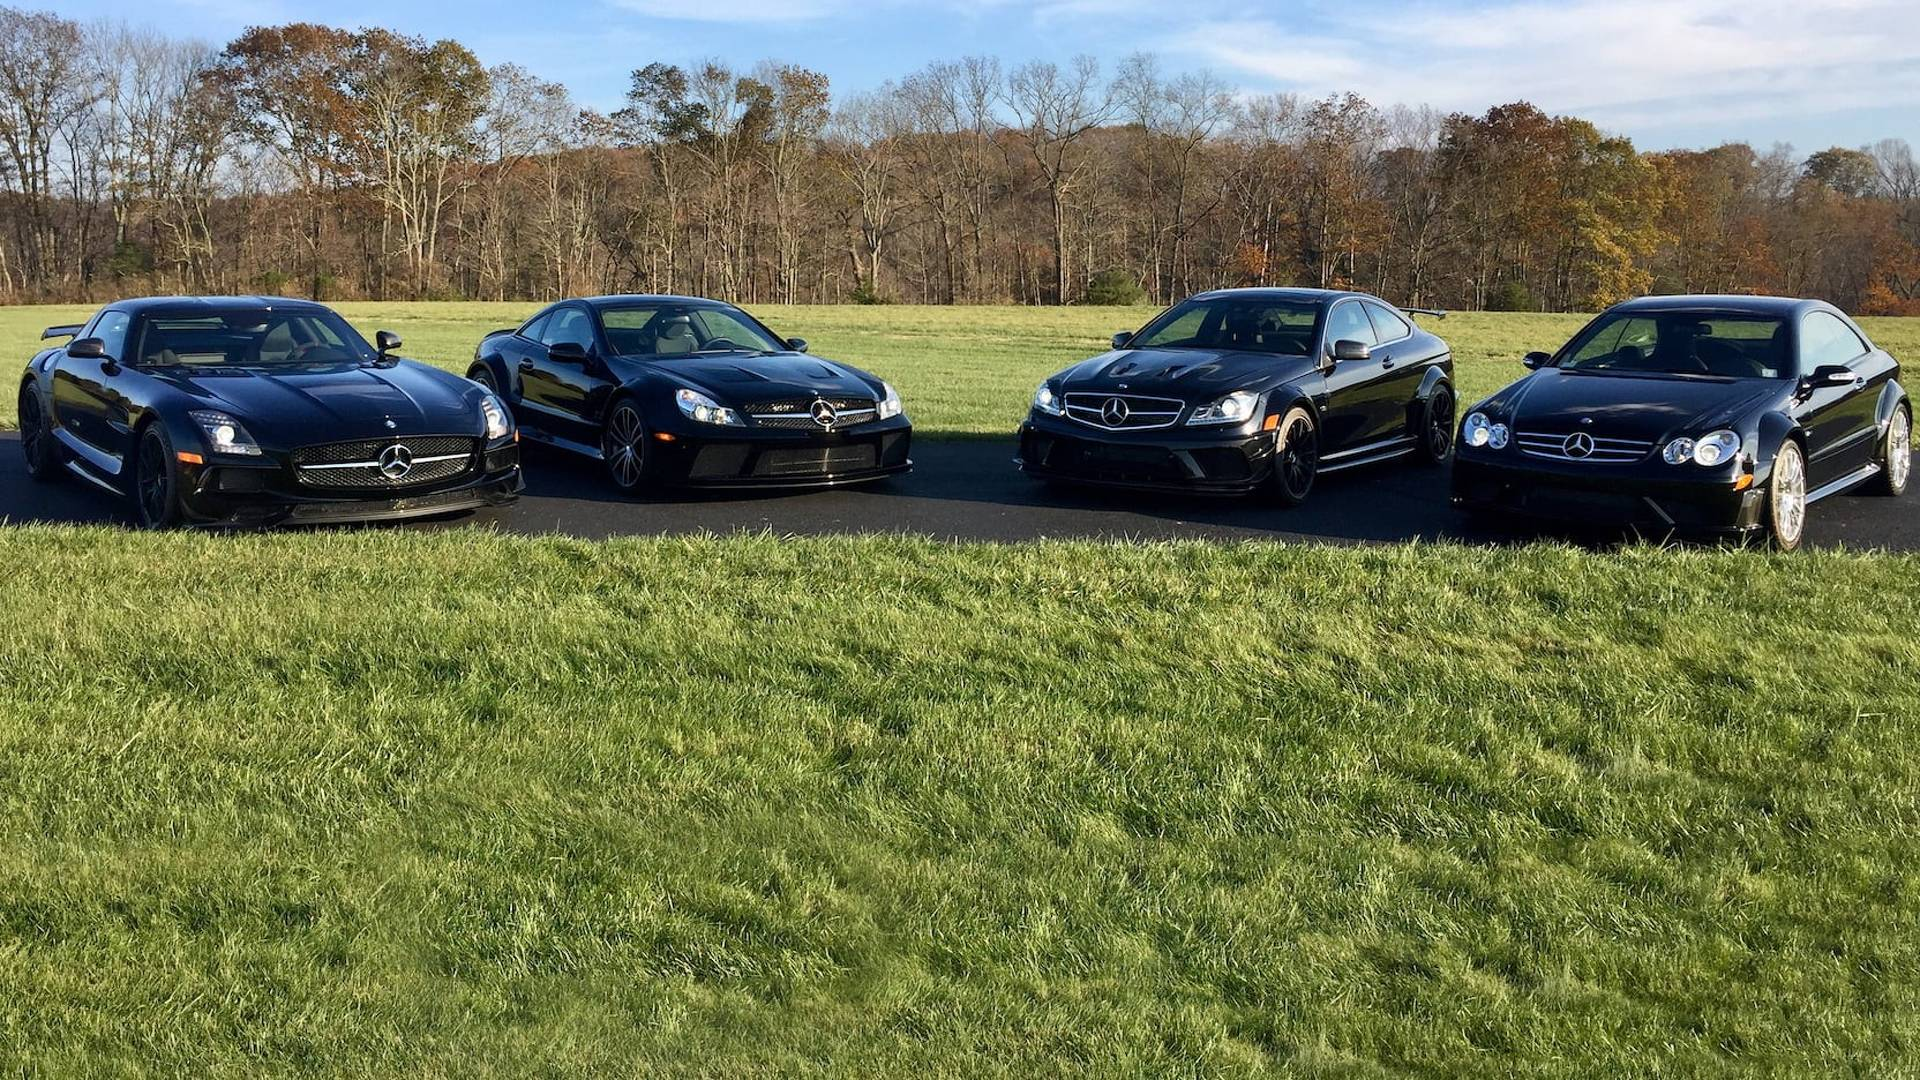 Fantastic Mercedes Black Series Collection Looking For New Home